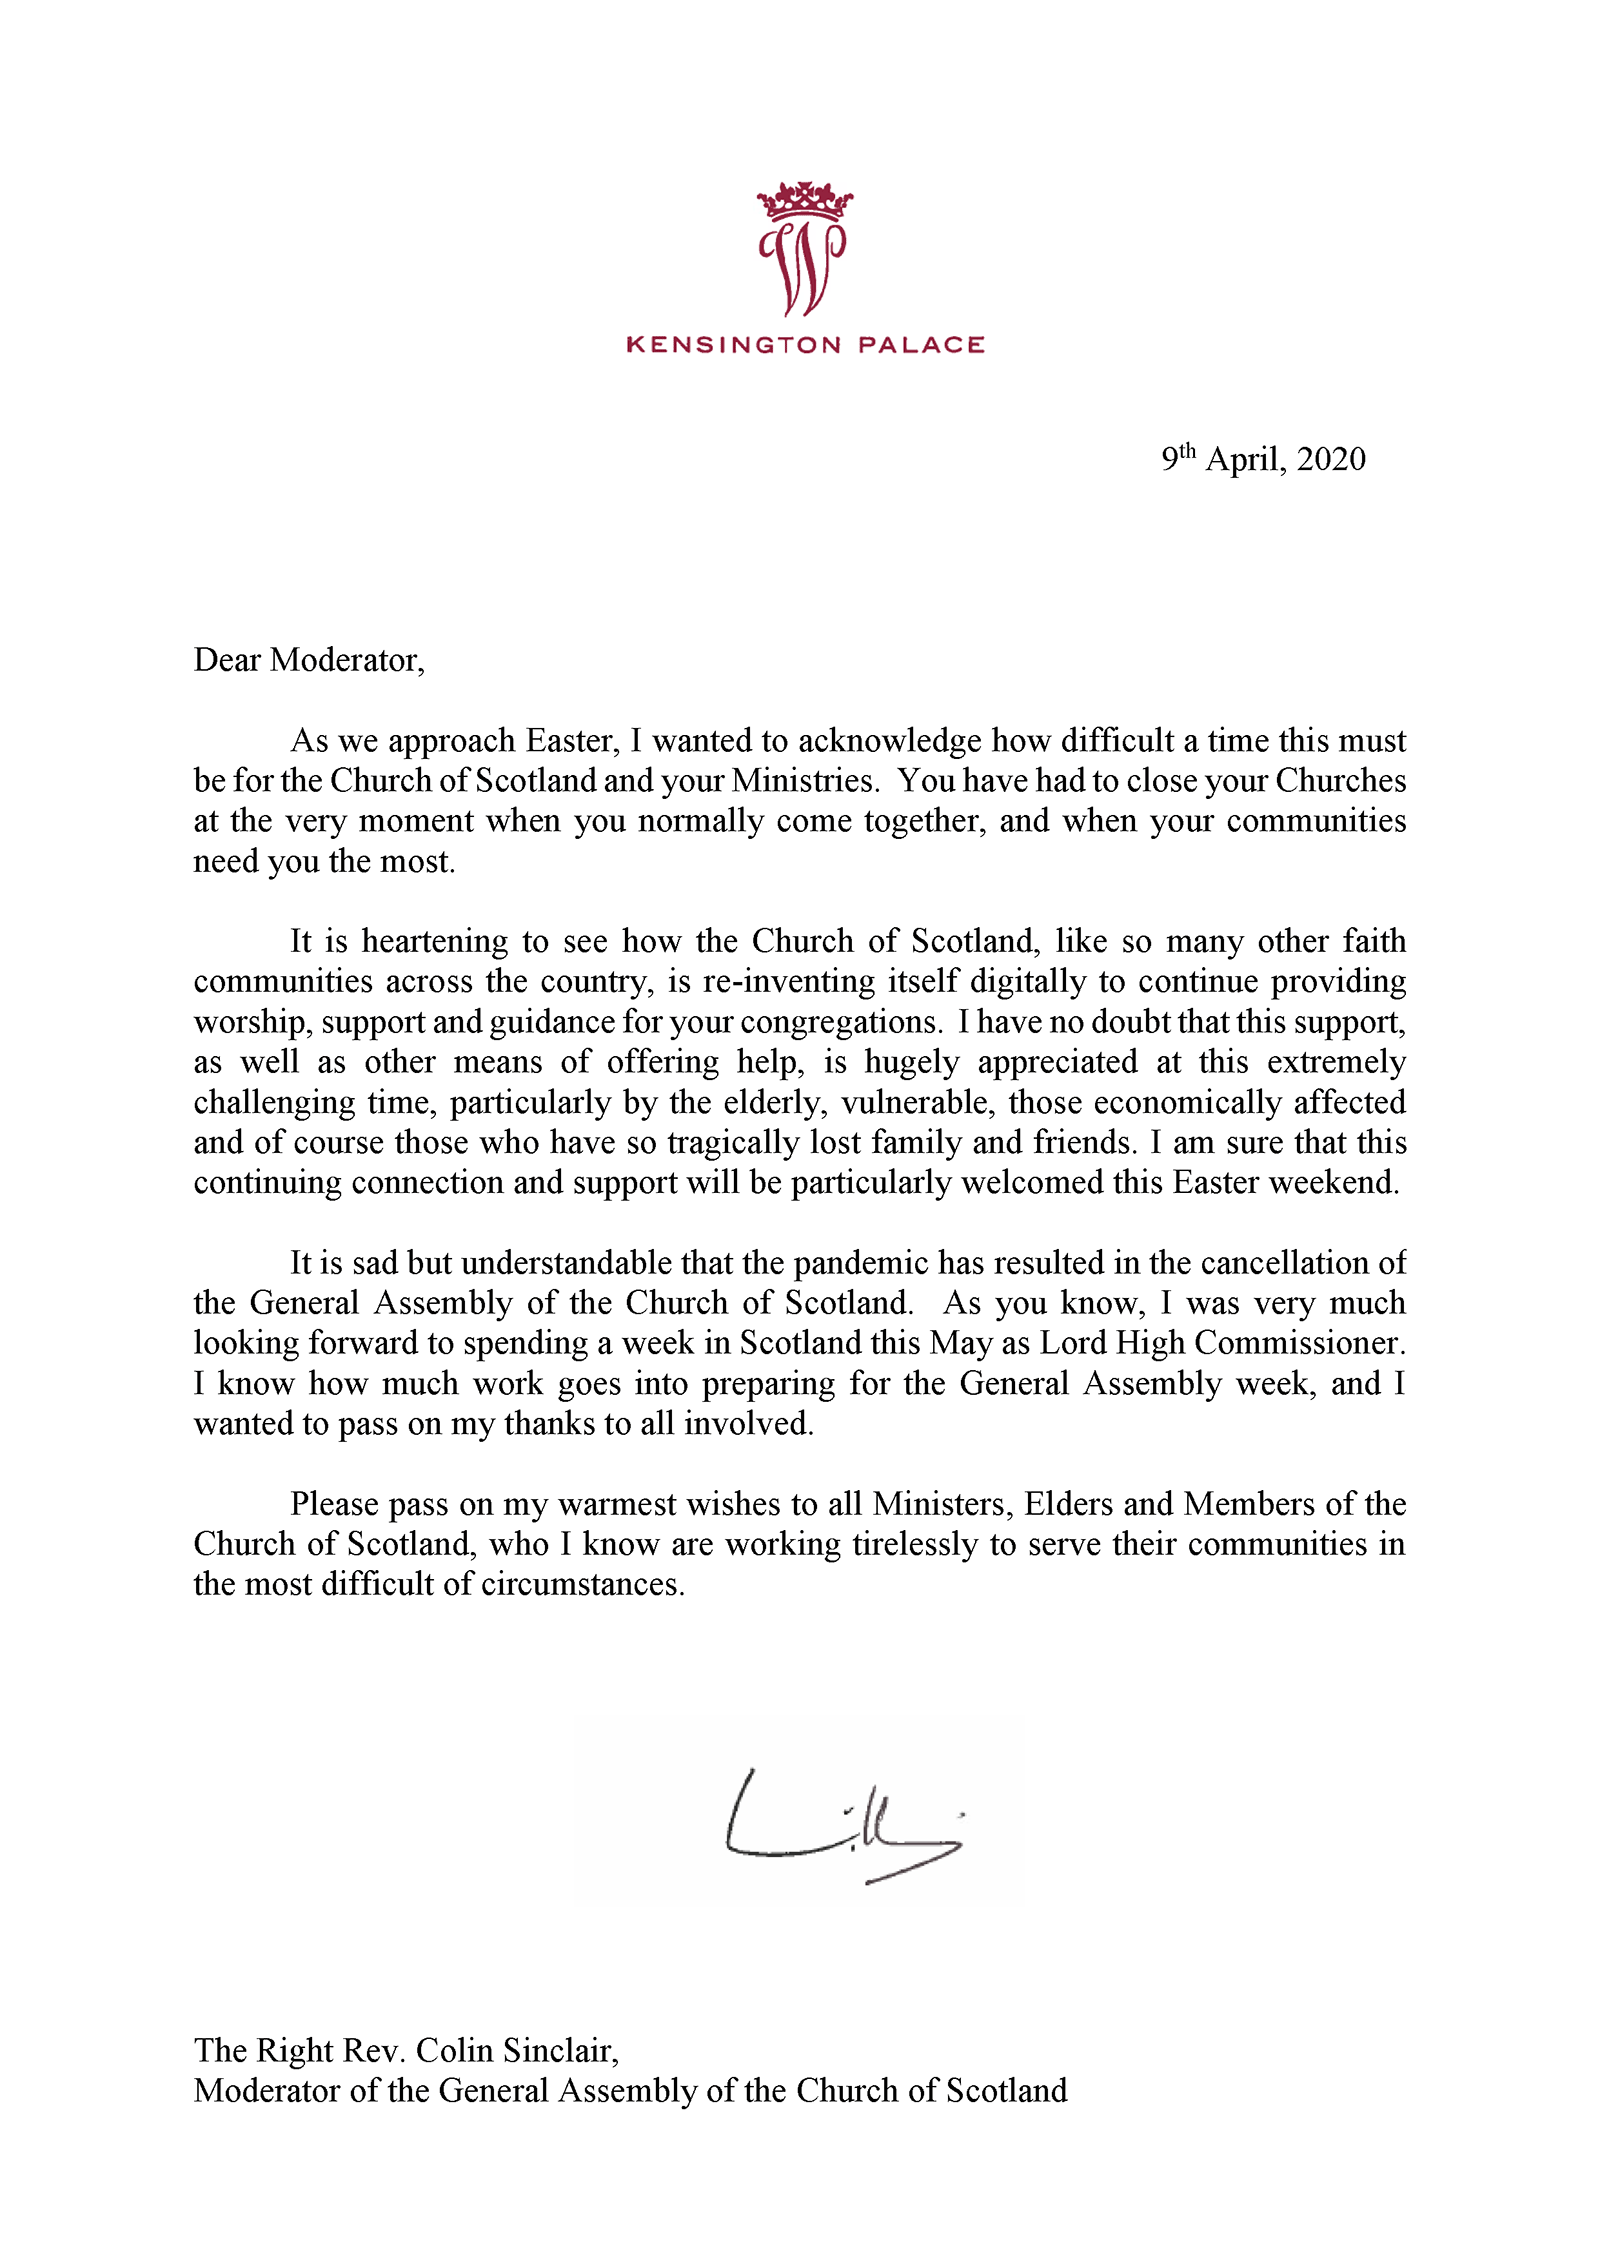 HRH Prince William Letter to Moderator